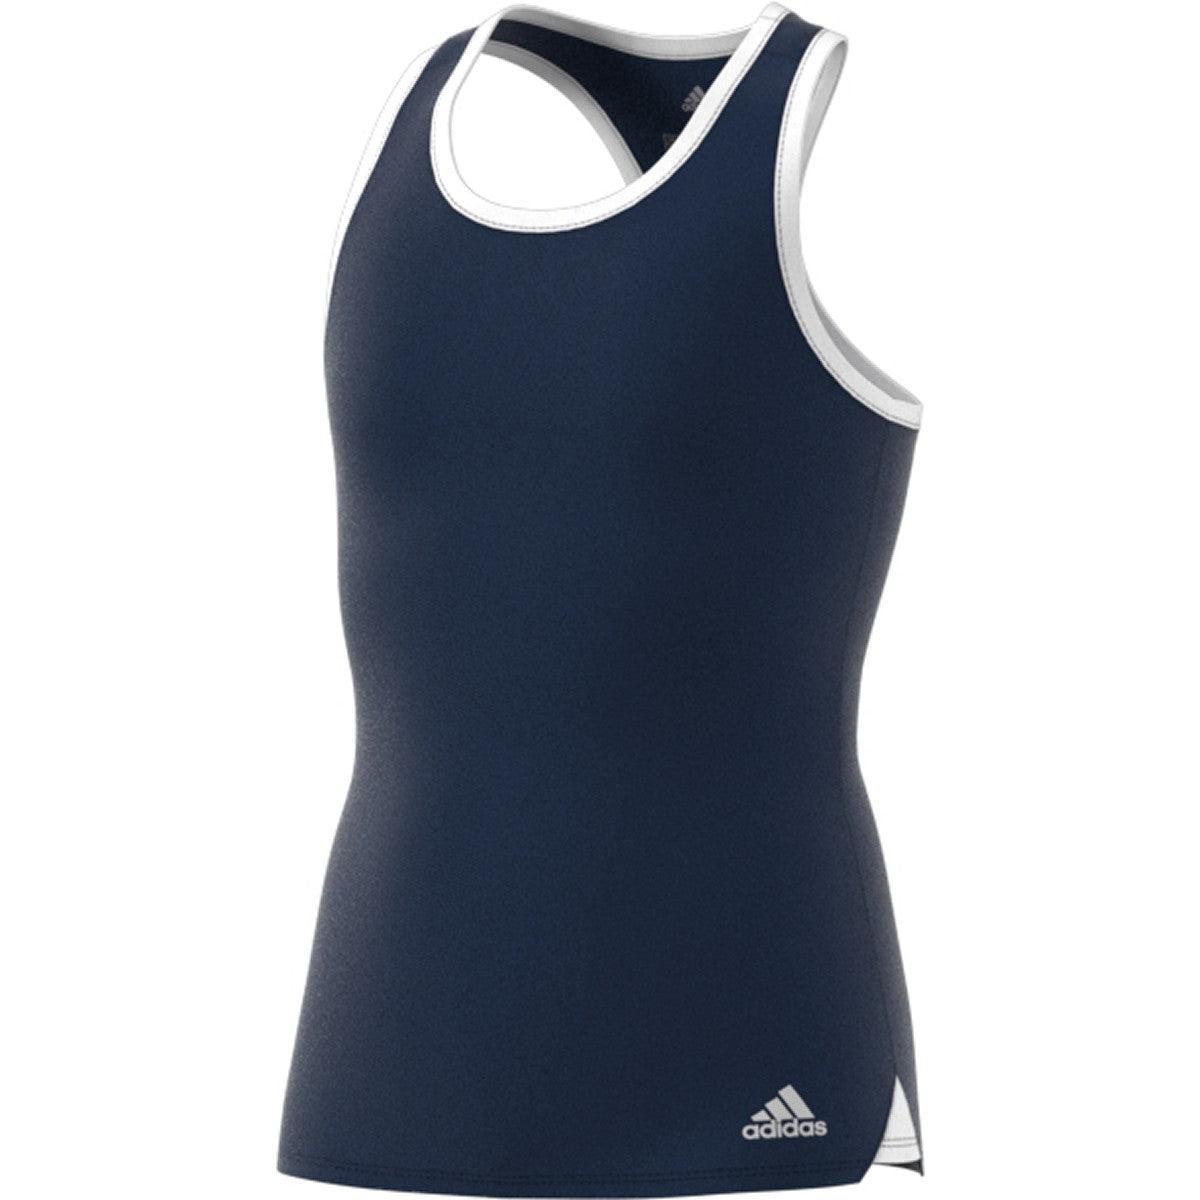 Adidas Girls Fall Tank    Collegiate Navy